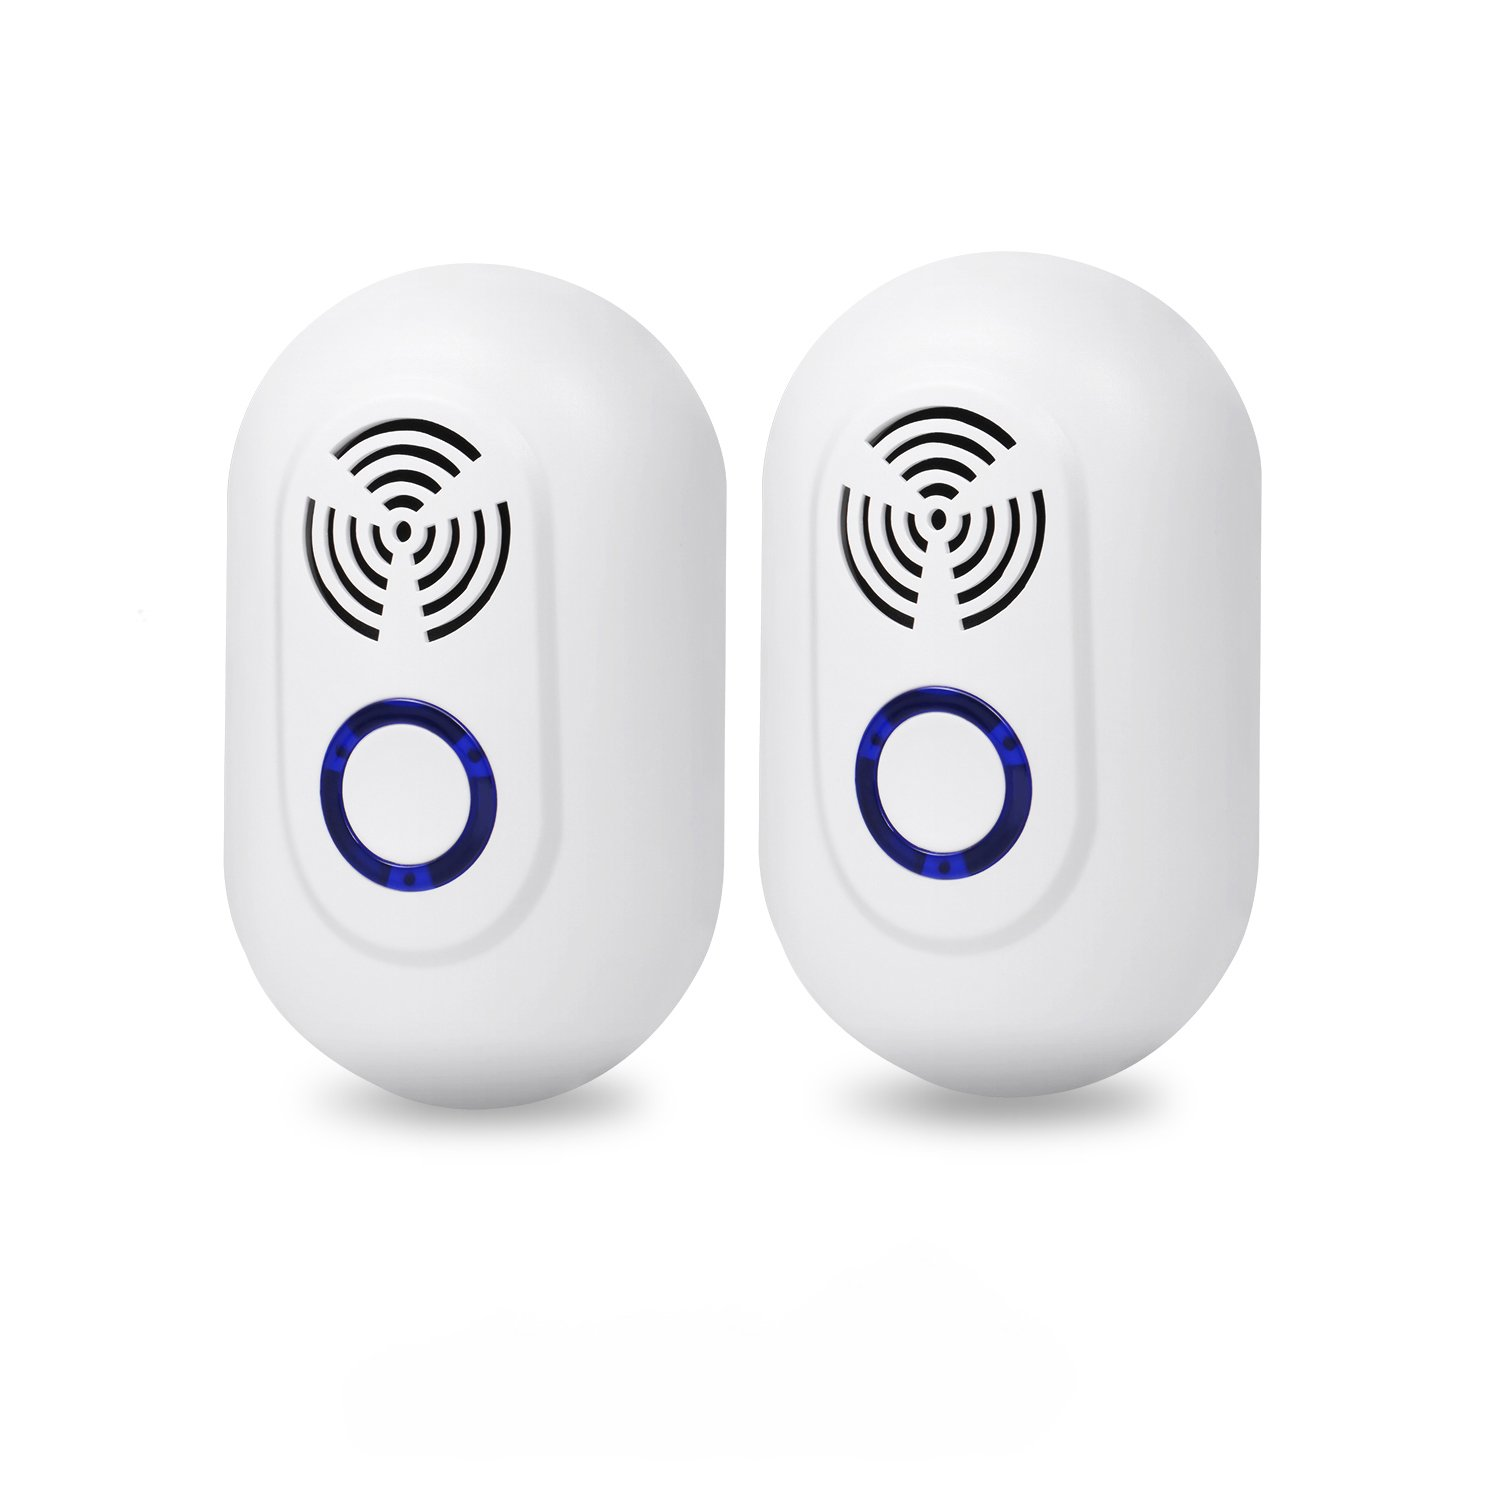 Ultrasonic Pest Repellent, Pest Control Ultrasonic Repeller Set of 2, Indoor Plug in Repellent for Mosquitoes, Mice, Rat, Bug, Roach, Spider, Rodent and More Insects, Safe for Human and Pets